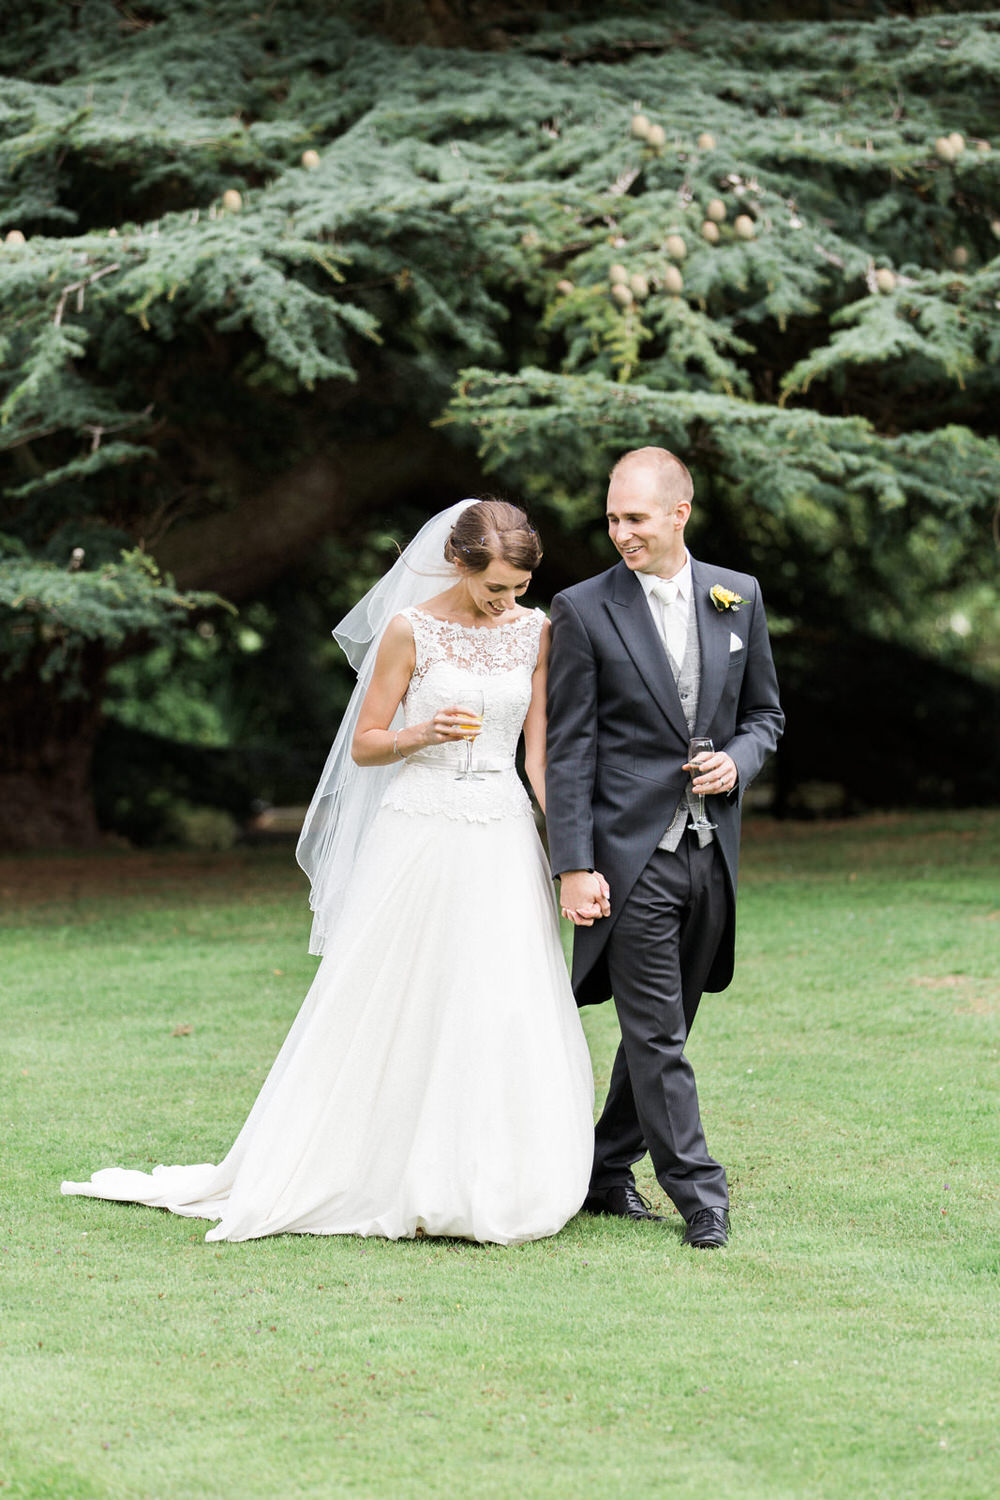 Special-Day-Photography-Dumbleton-Hall-hotel-Evensham-Couples-Photography-at-Dubleton-Hall-Hotel.jpg